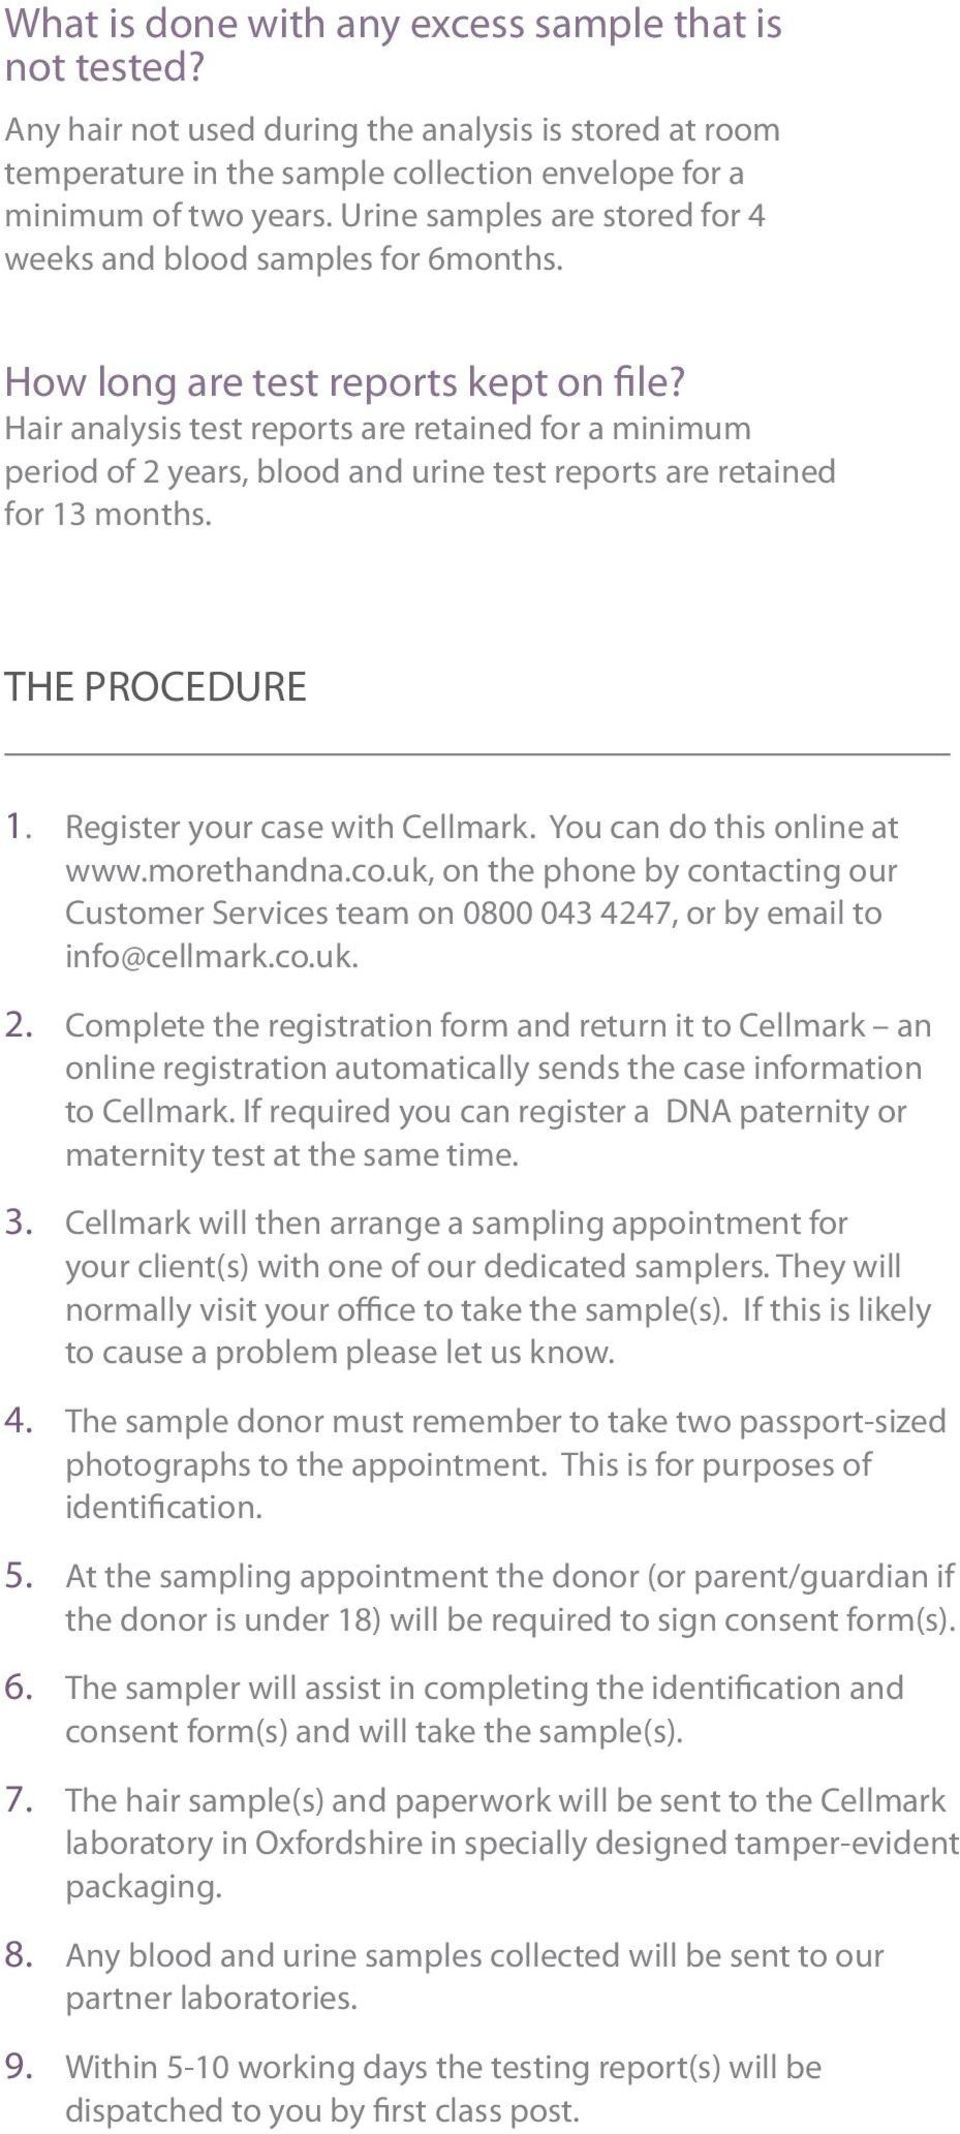 Hair analysis test reports are retained for a minimum period of 2 years, blood and urine test reports are retained for 13 months. THE PROCEDURE 1. Register your case with Cellmark.